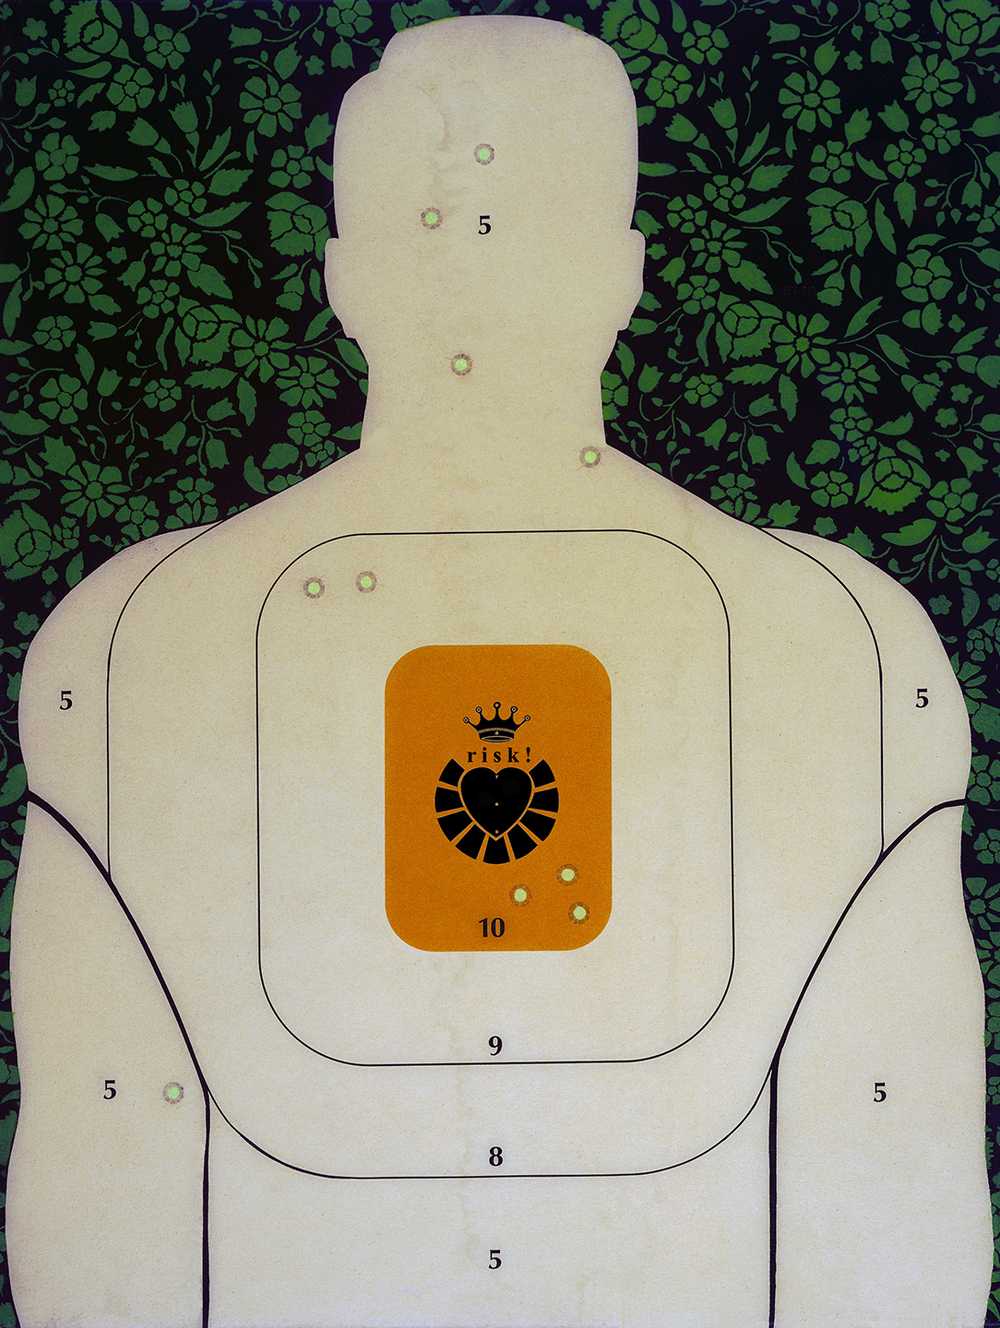 Special Edition Heart & Crown Training Target / 67 x 50 / Original Sold